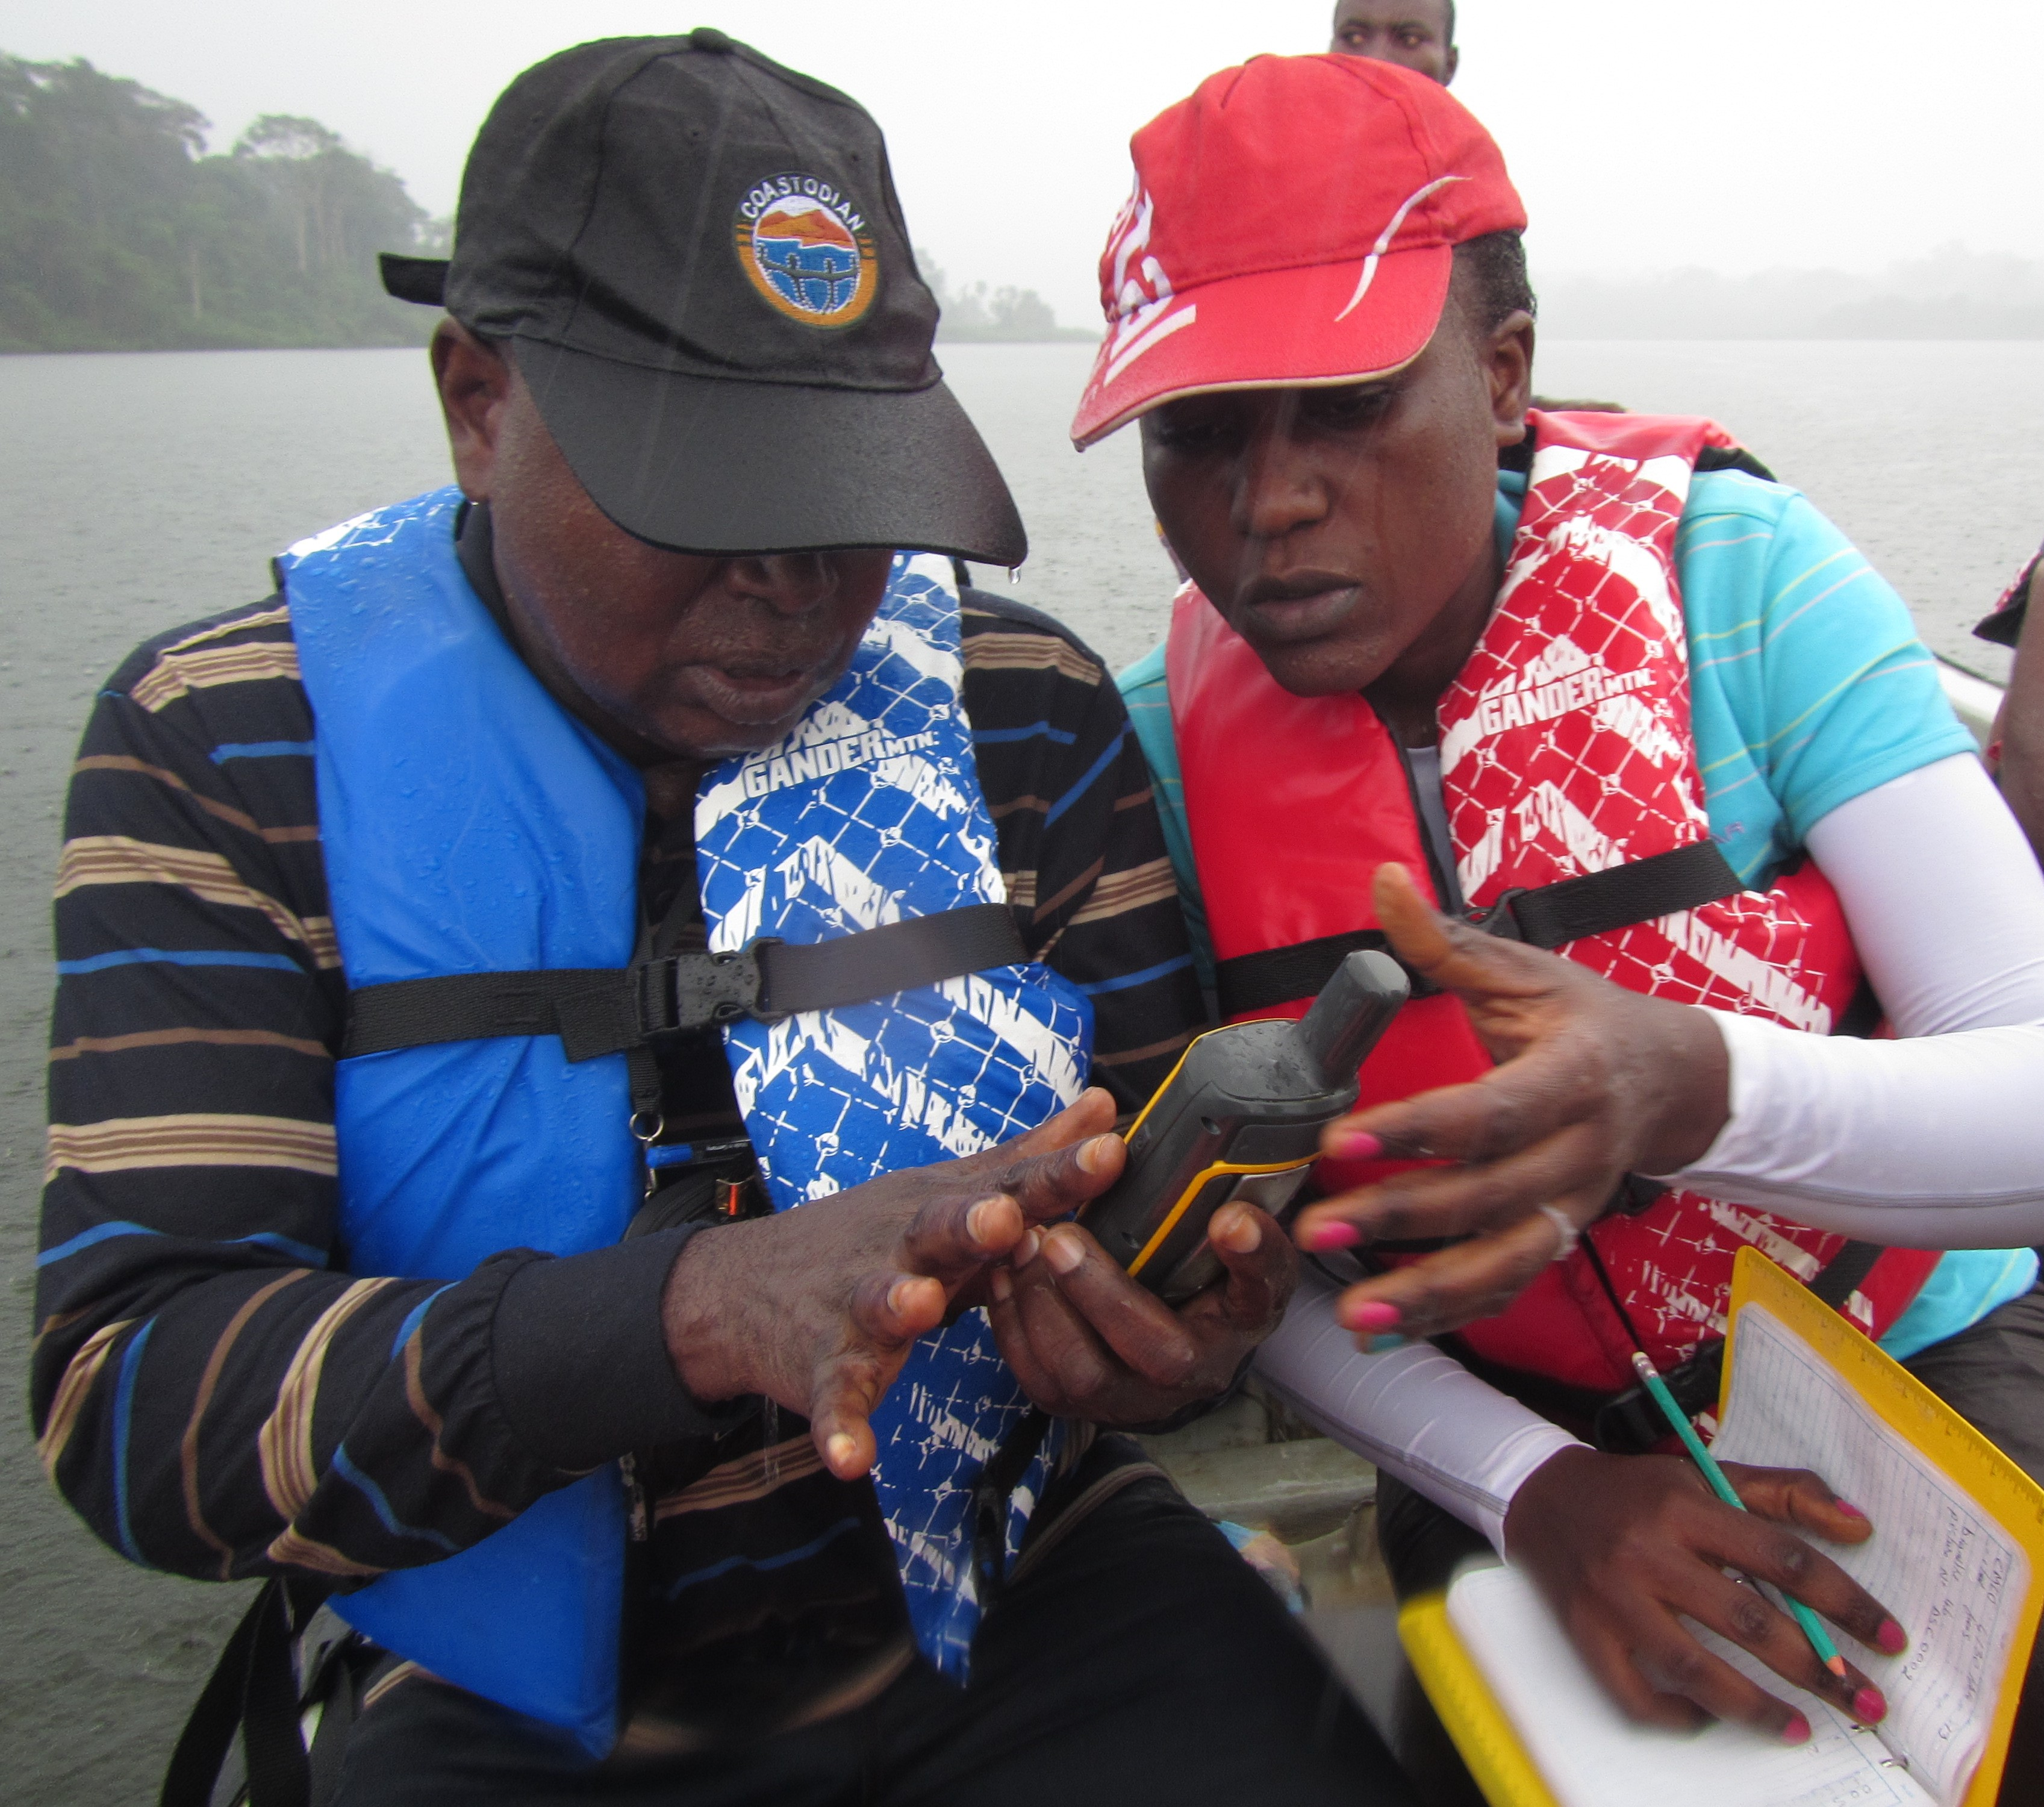 Trainees from Democratic Republic of the Congo and Cameroon read a GPS in a downpour during field work.